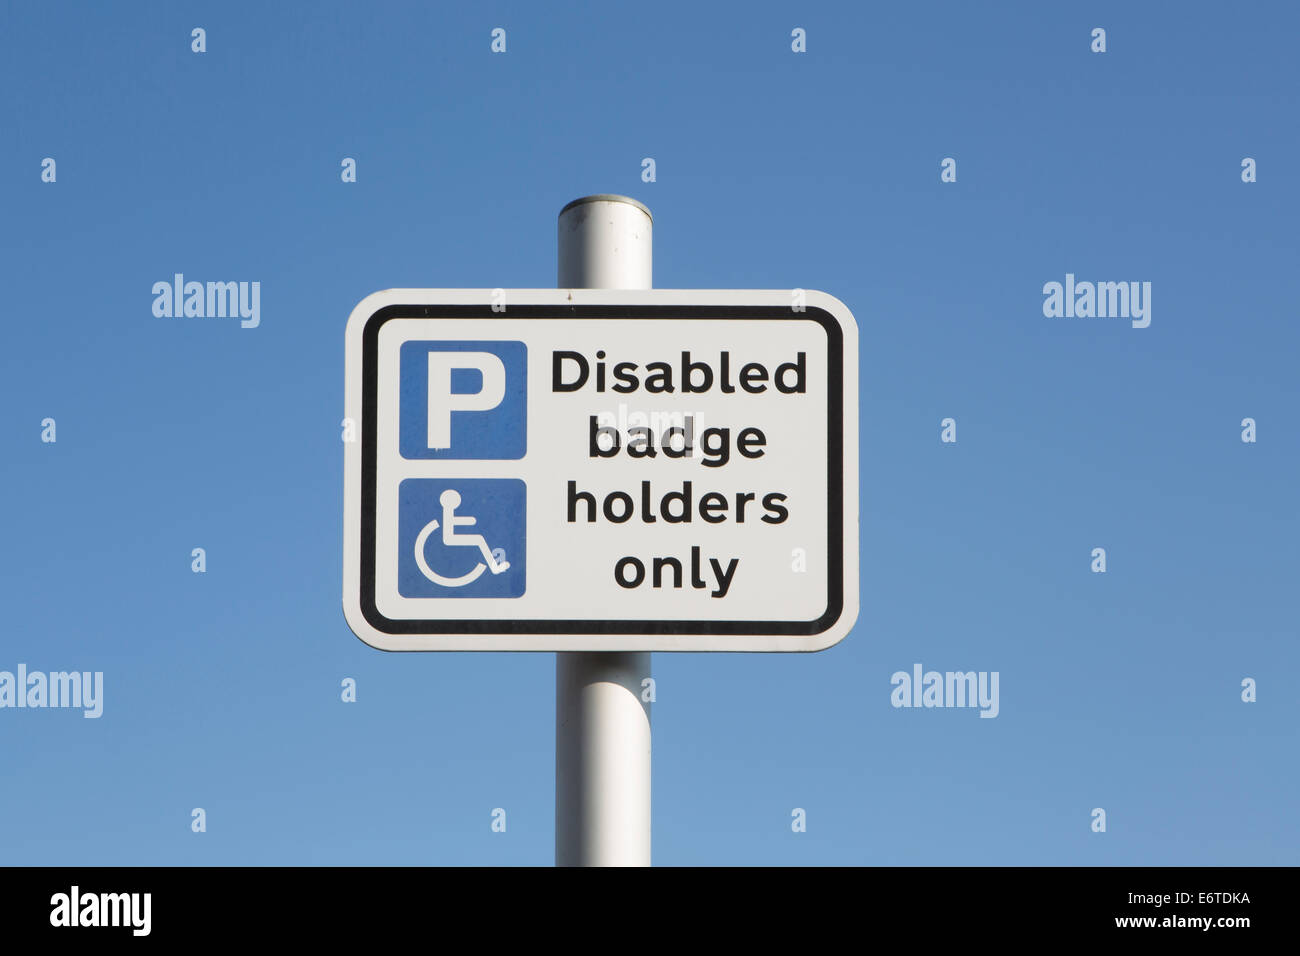 A British parking sign for people with disabilities - Stock Image